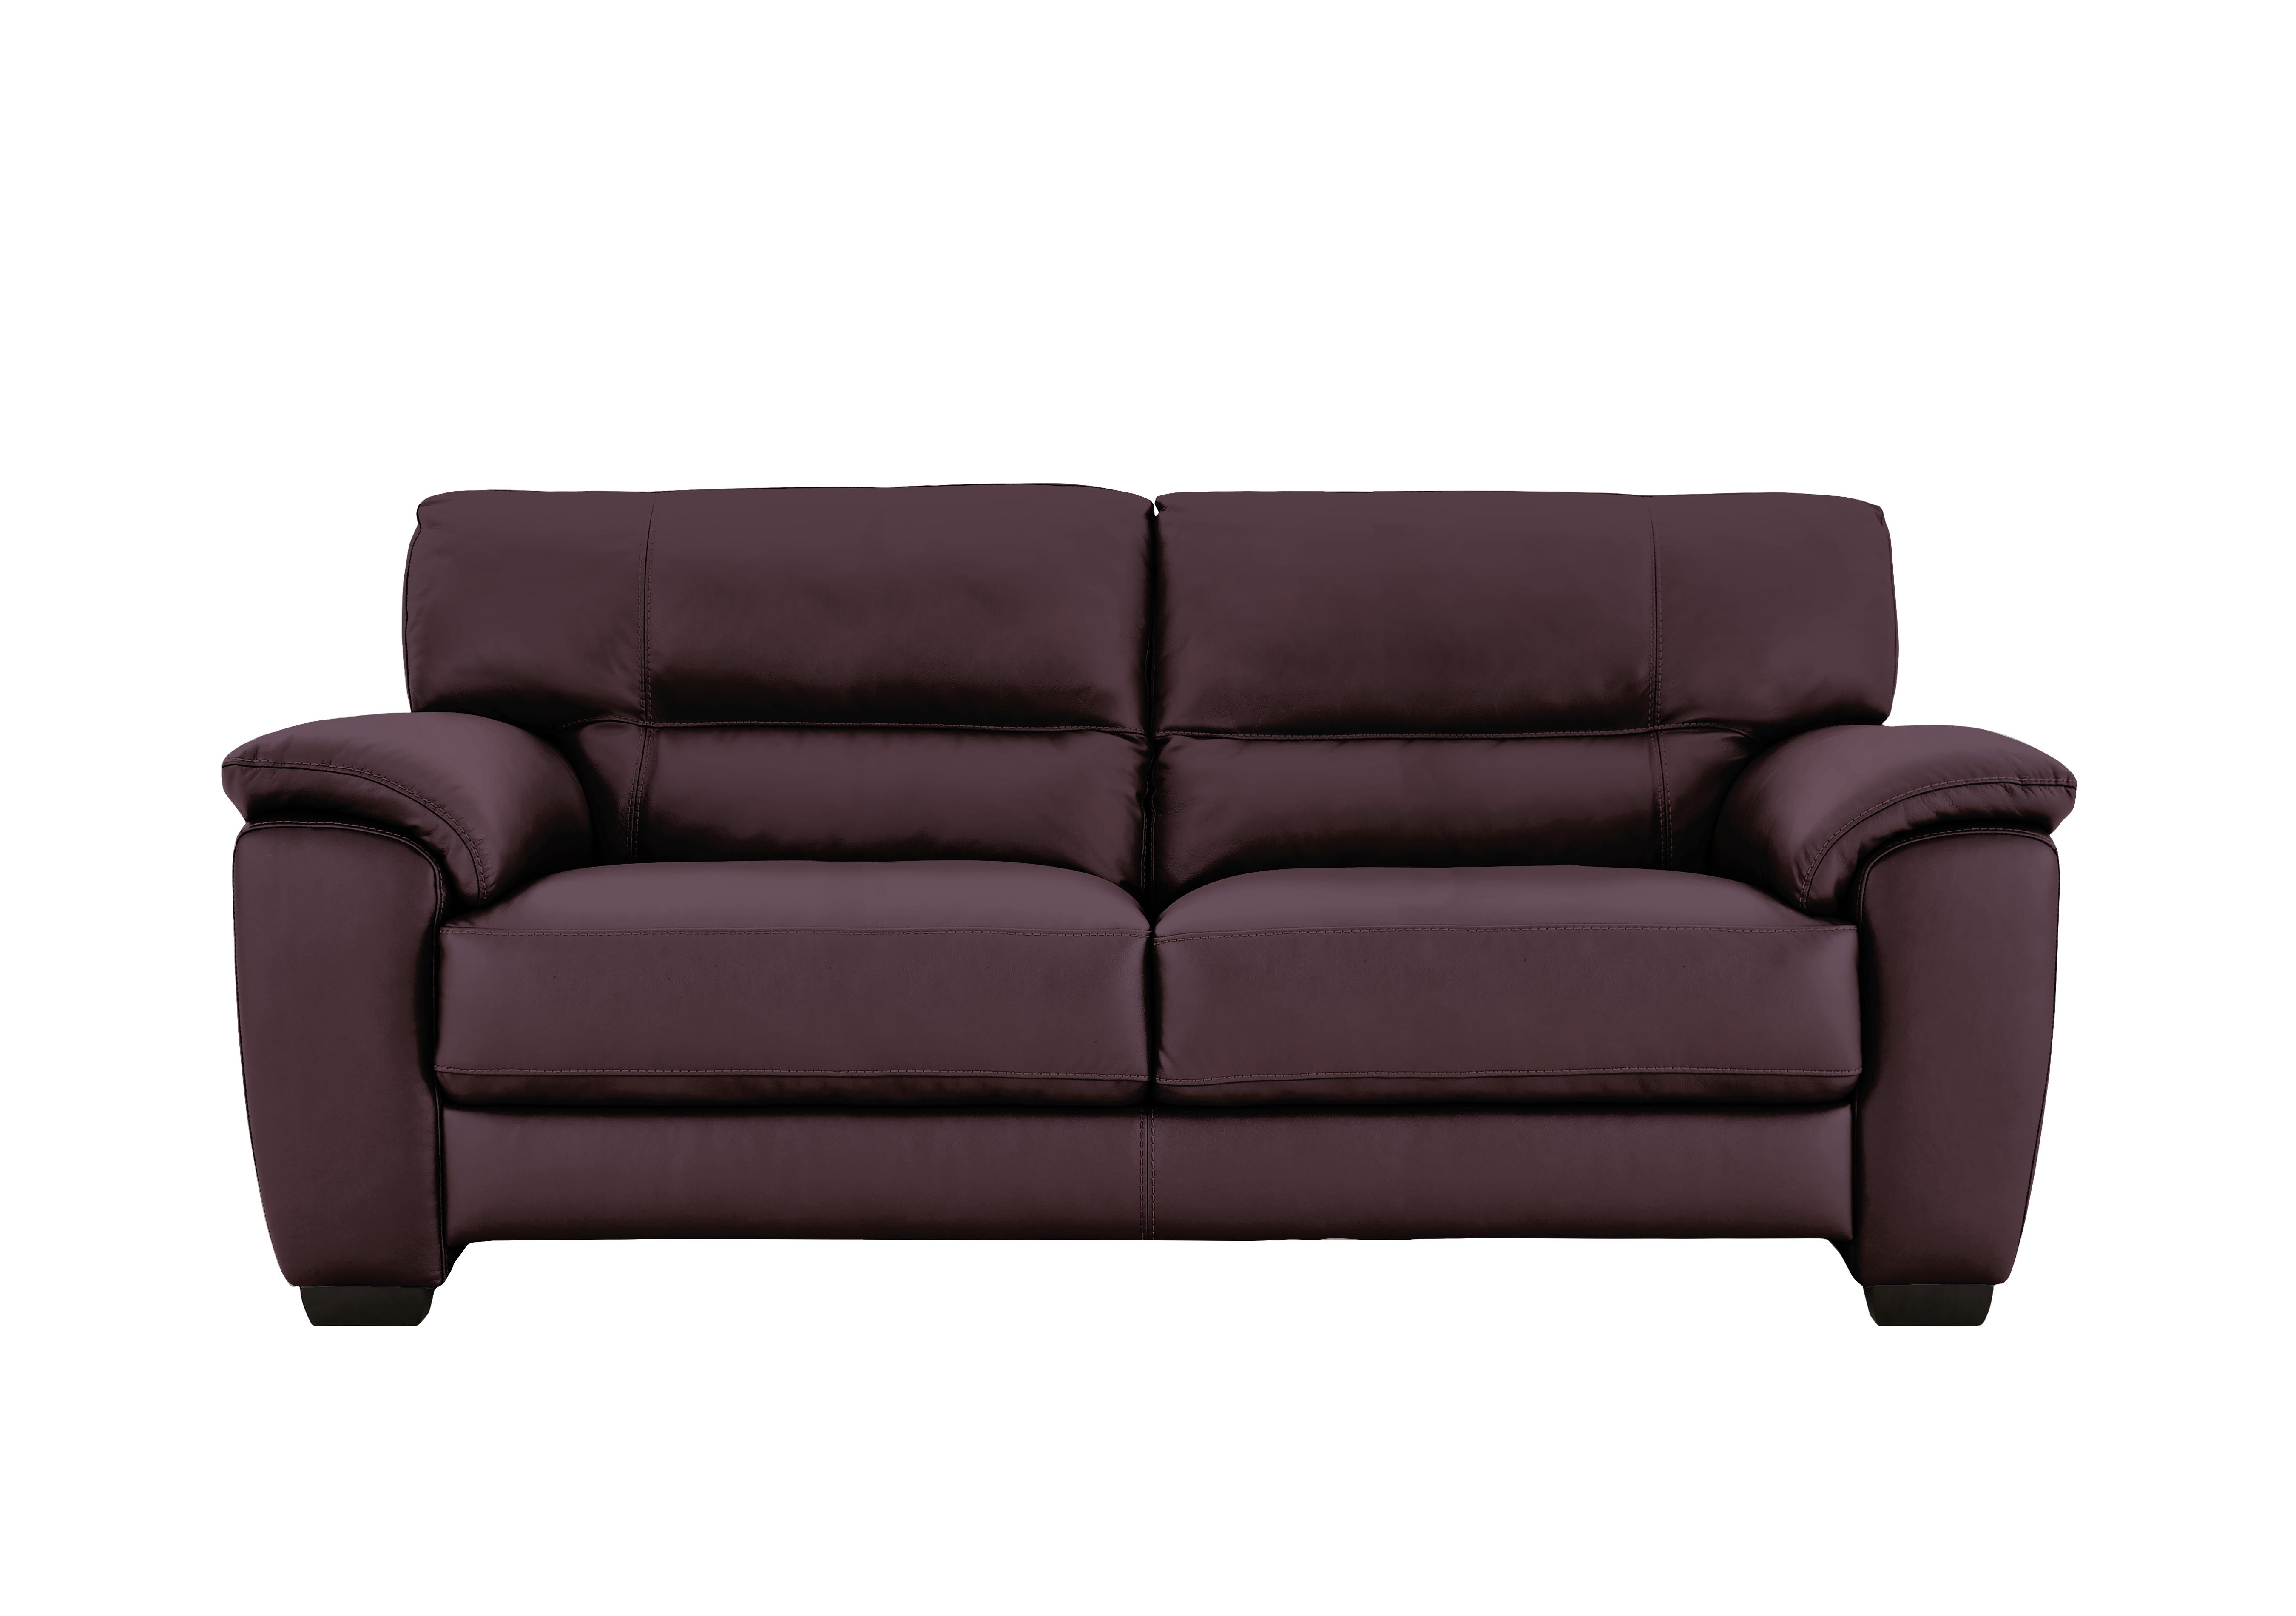 plum sofas uk sofa and ottoman with chaise cushion purple at exceptional prices furniture village limited stock available